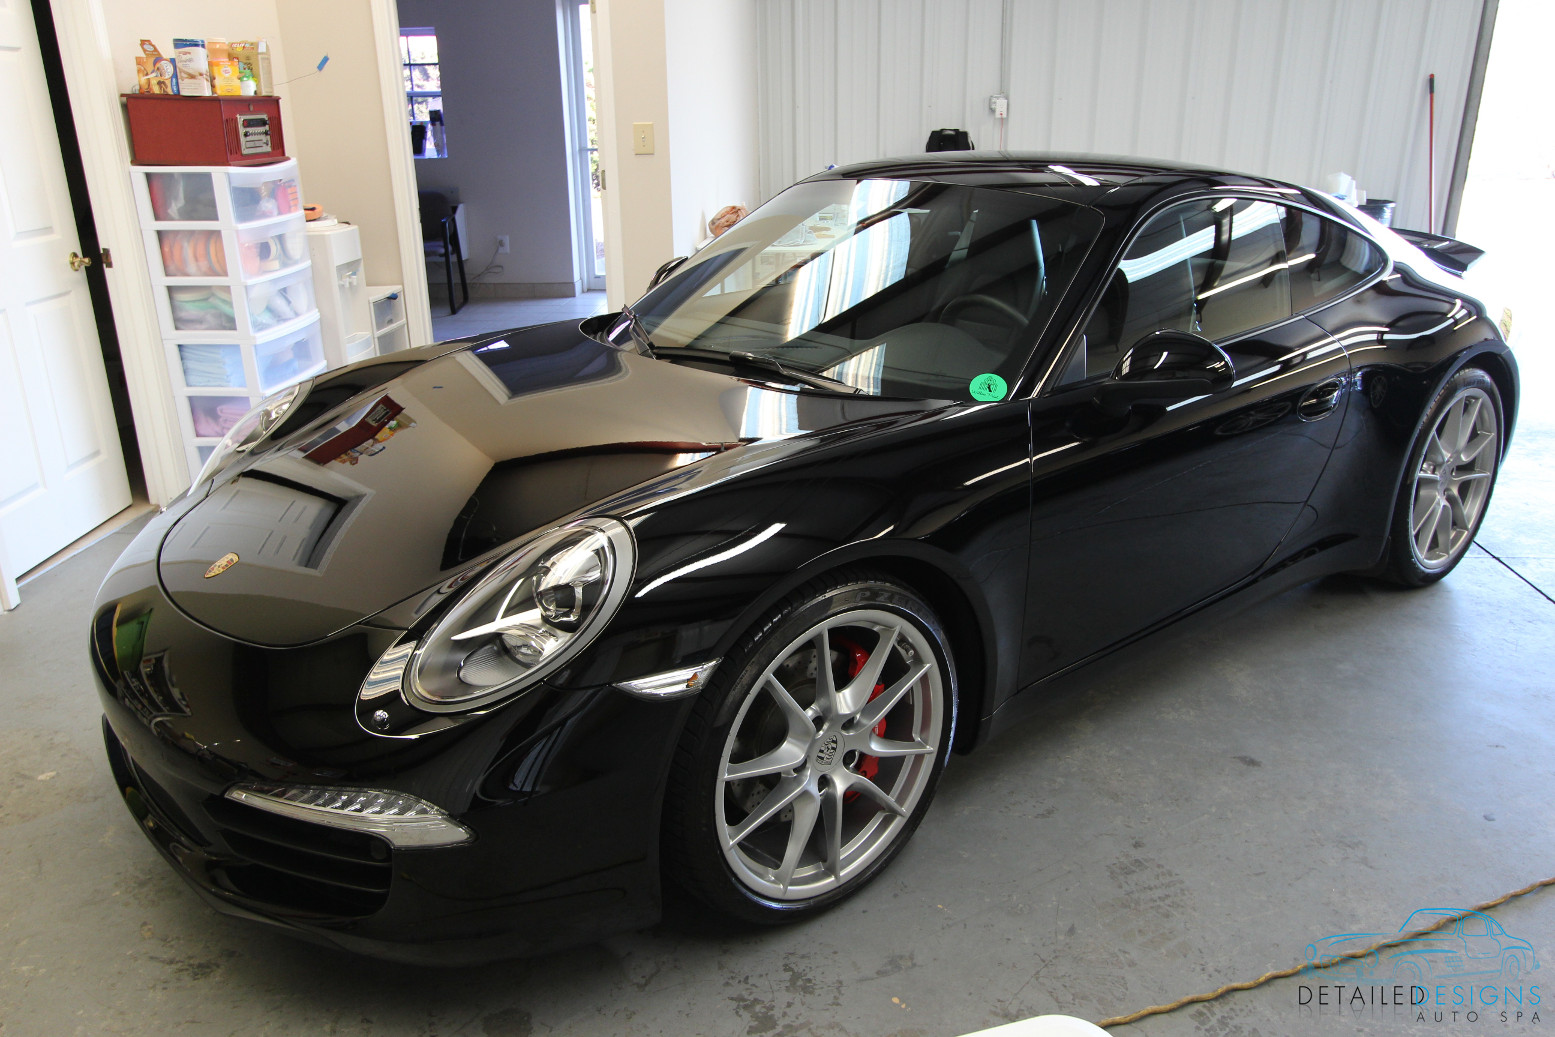 Atlanta Porsche Clear Bra PPF Paint Protection Film